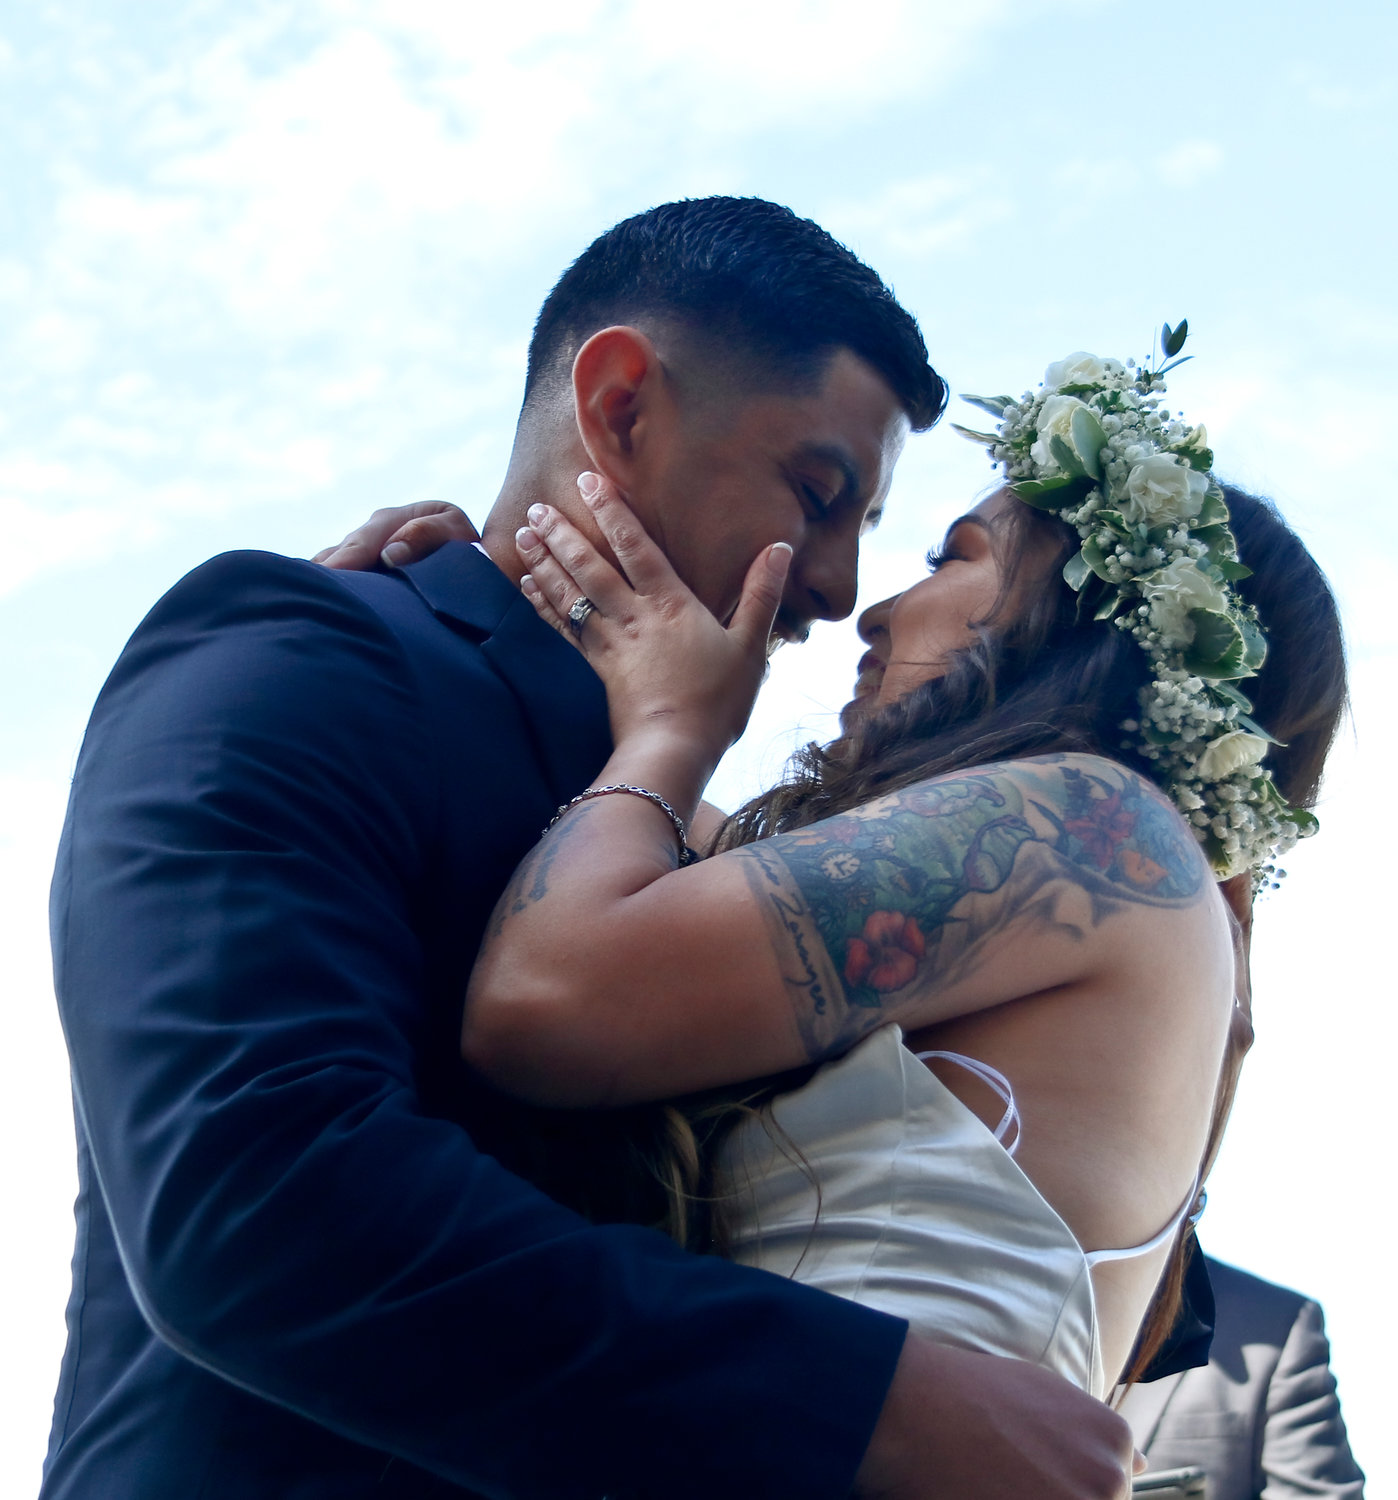 Ryan Chavarria, 25, and Samantha Del Bosque, 24, both sergeants in the U.S. Marine Corps., married on Sept. 20 during a small ceremony at the Merchant Marine Academy, in King's Point.